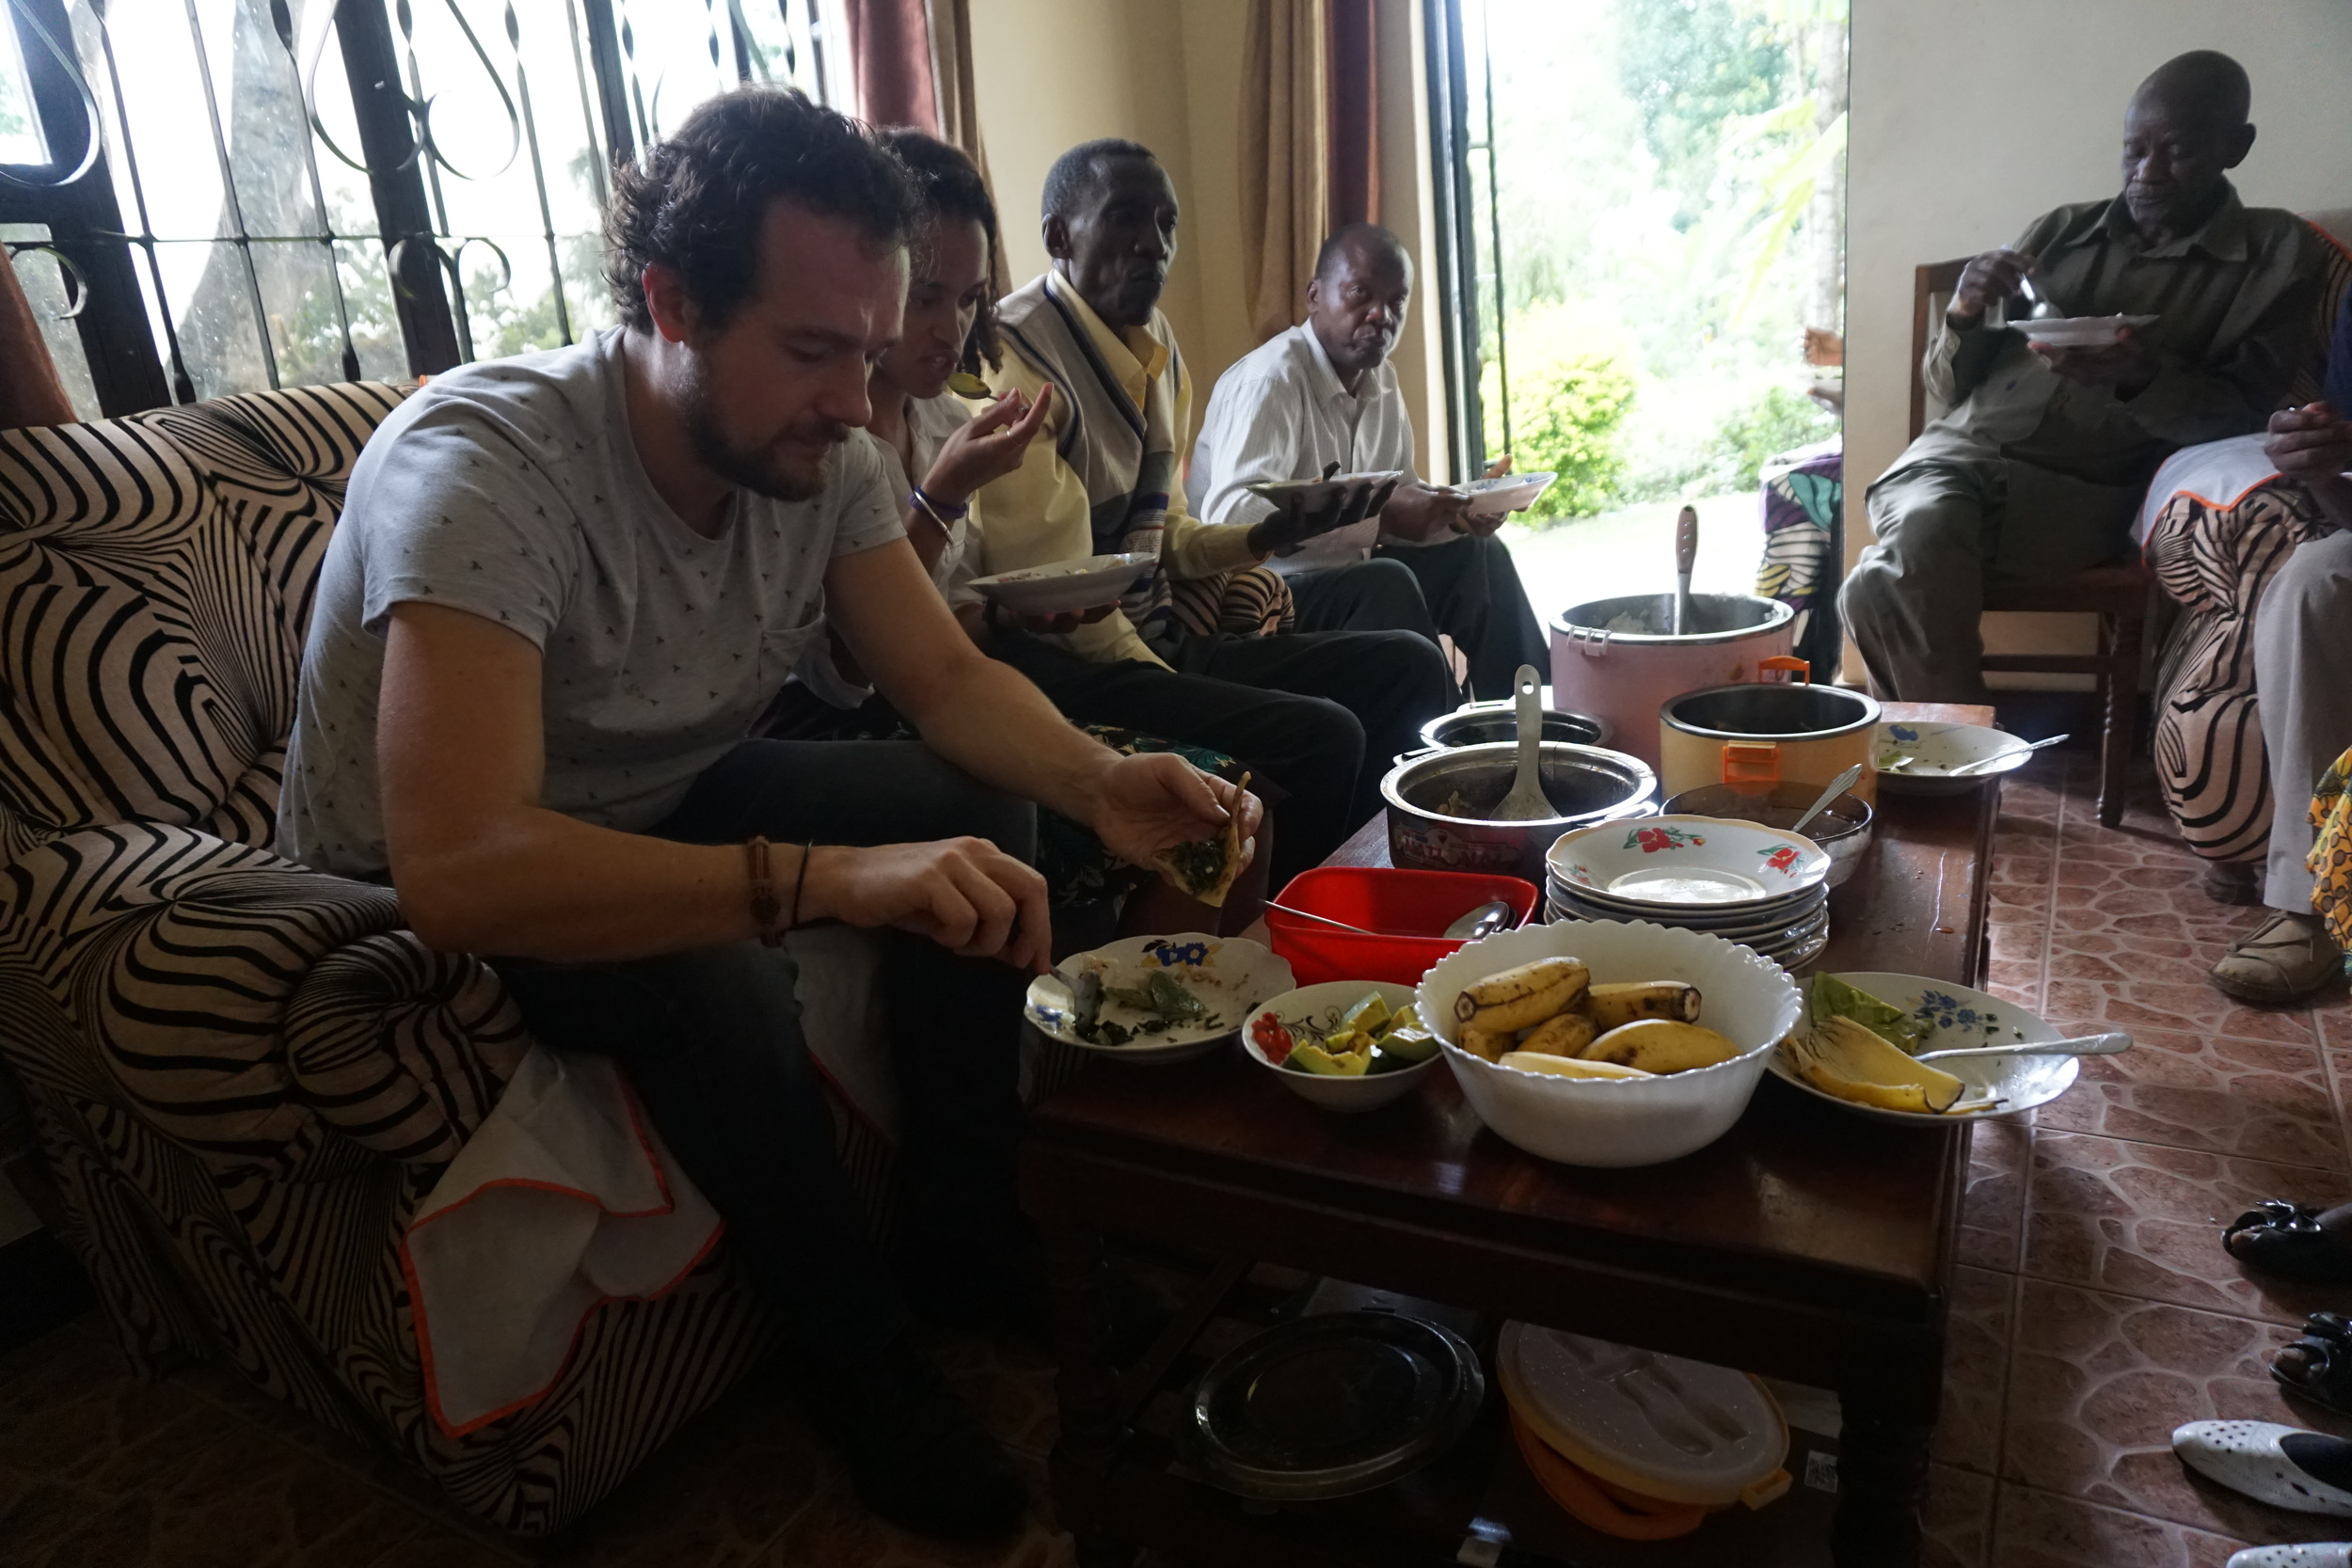 Lunch with the group members after a long walk through the coffee fields.